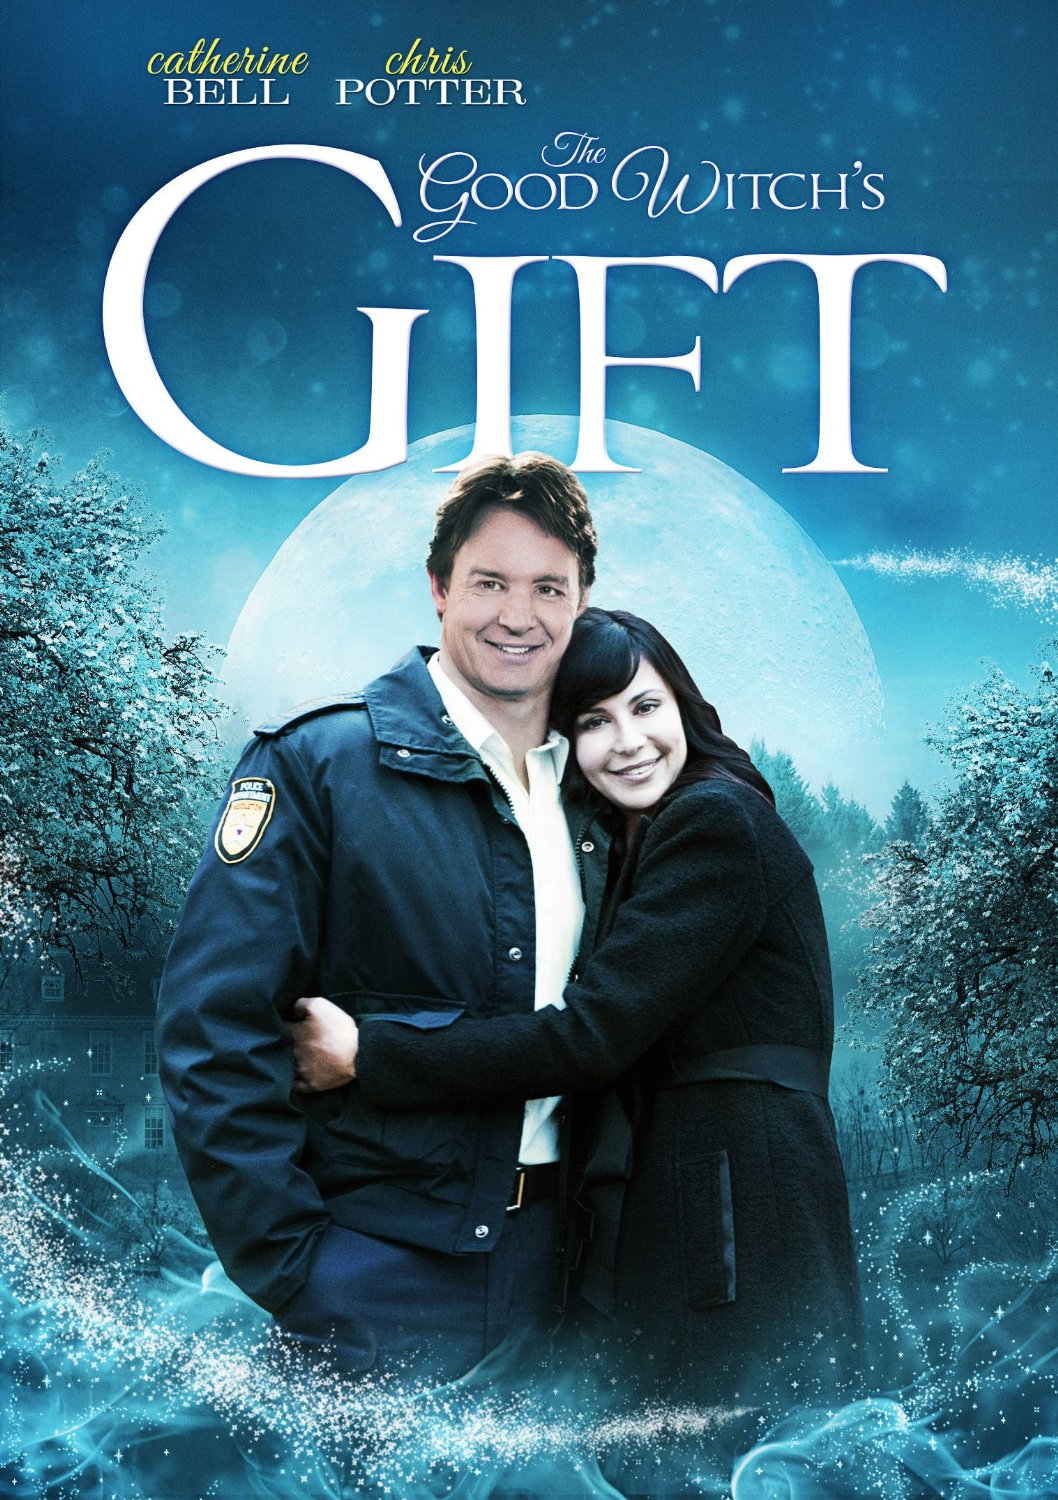 The Good Witch's Gift   Christmas Specials Wiki   FANDOM